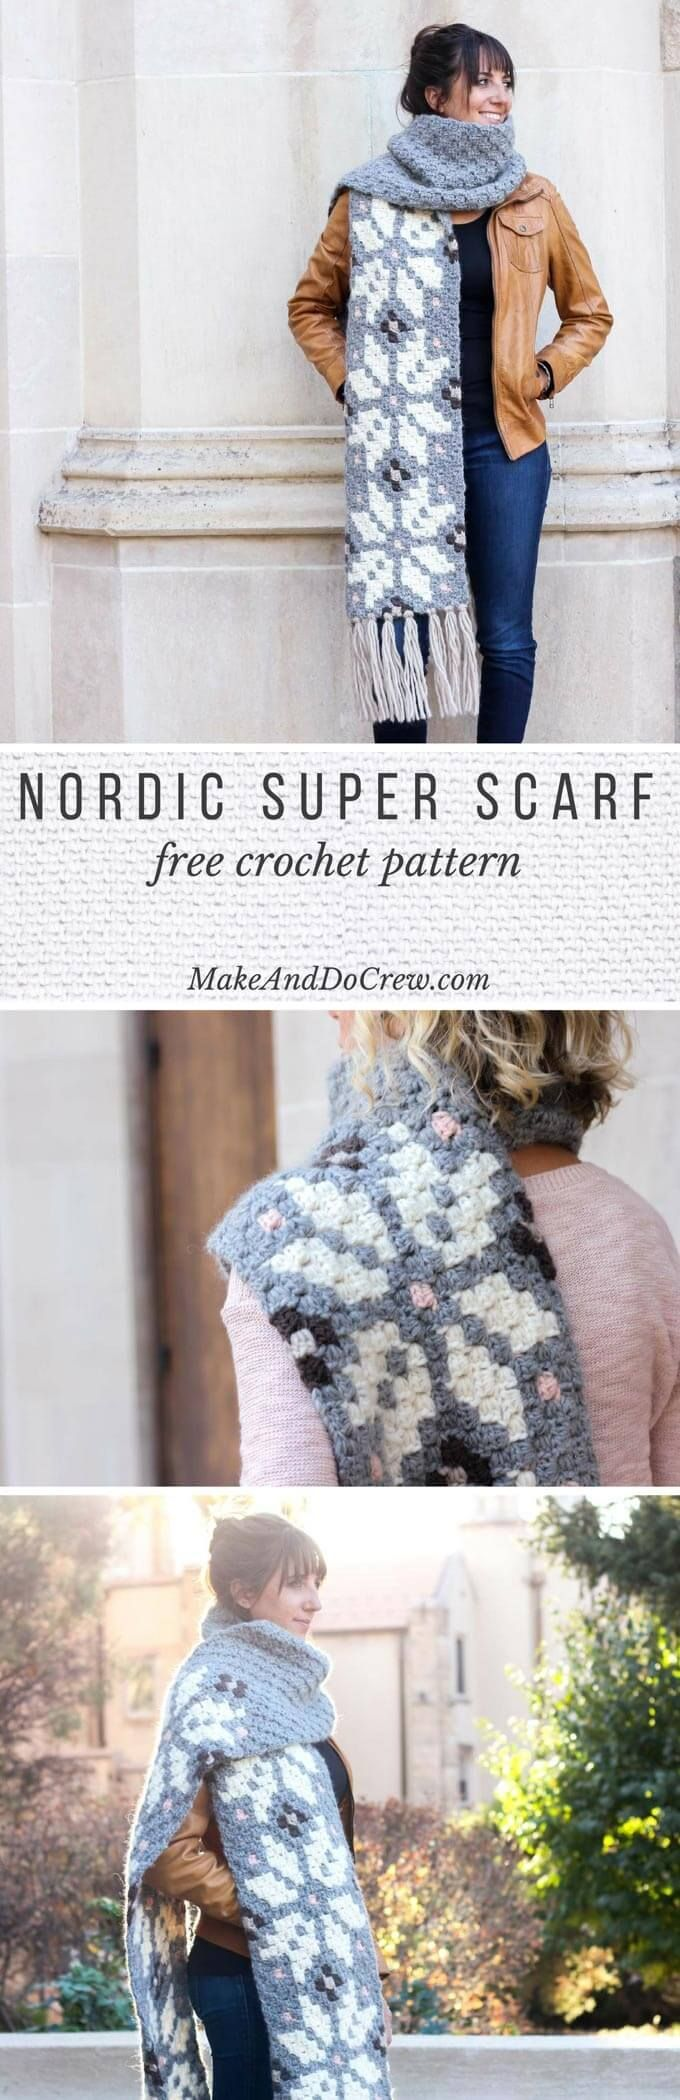 Whether you live in the North Pole or just want to jump on the super scarf trend, this nordic crochet super scarf pattern will keep you feeling warm, but lookin' hot all winter long. This chunky crochet pattern is made with Patons Classic Wool Roving yarn. Click to download the free c2c crochet pattern! (scheduled via http://www.tailwindapp.com?utm_source=pinterest&utm_medium=twpin&utm_content=post115022911&utm_campaign=scheduler_attribution)